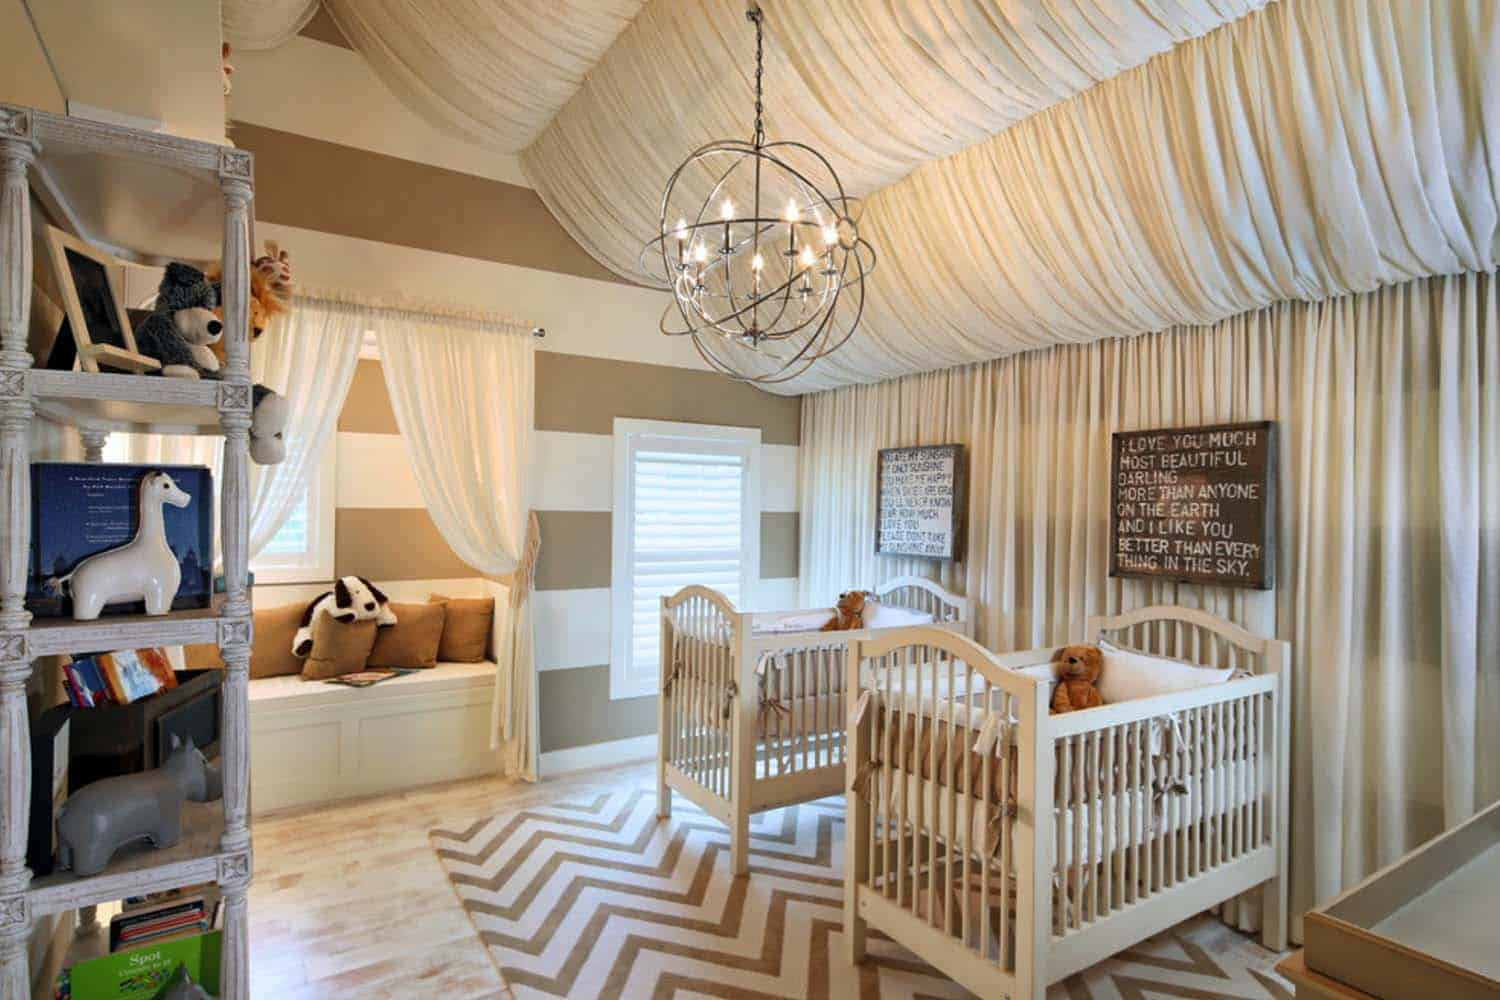 Stylish Nursery Decorating Ideas-30-1 Kindesign